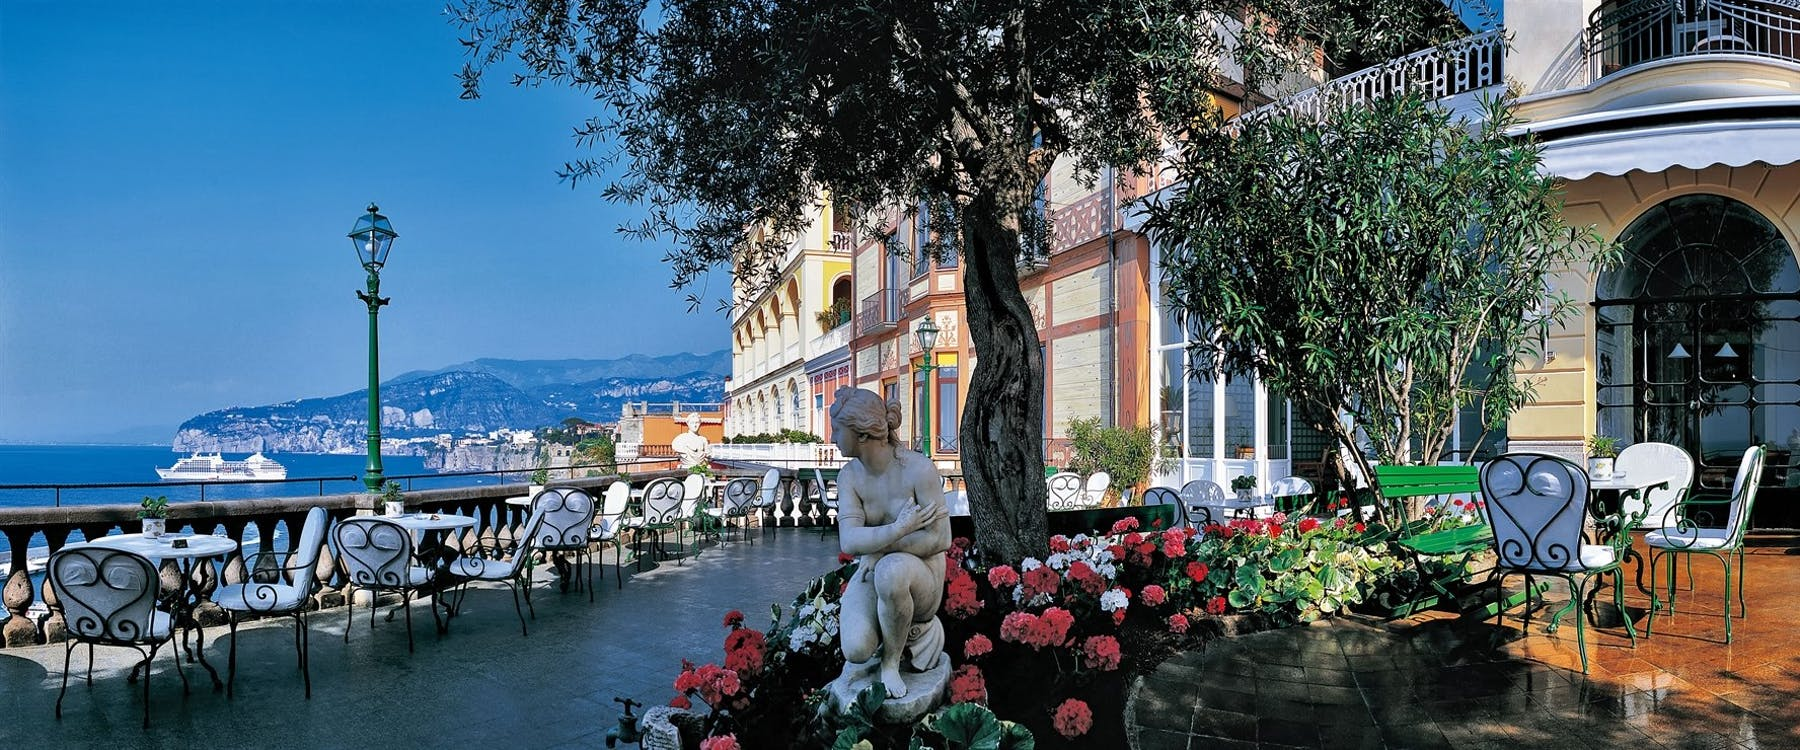 Grand Hotel Excelsior Vittoria Italy - Prices from £1,118